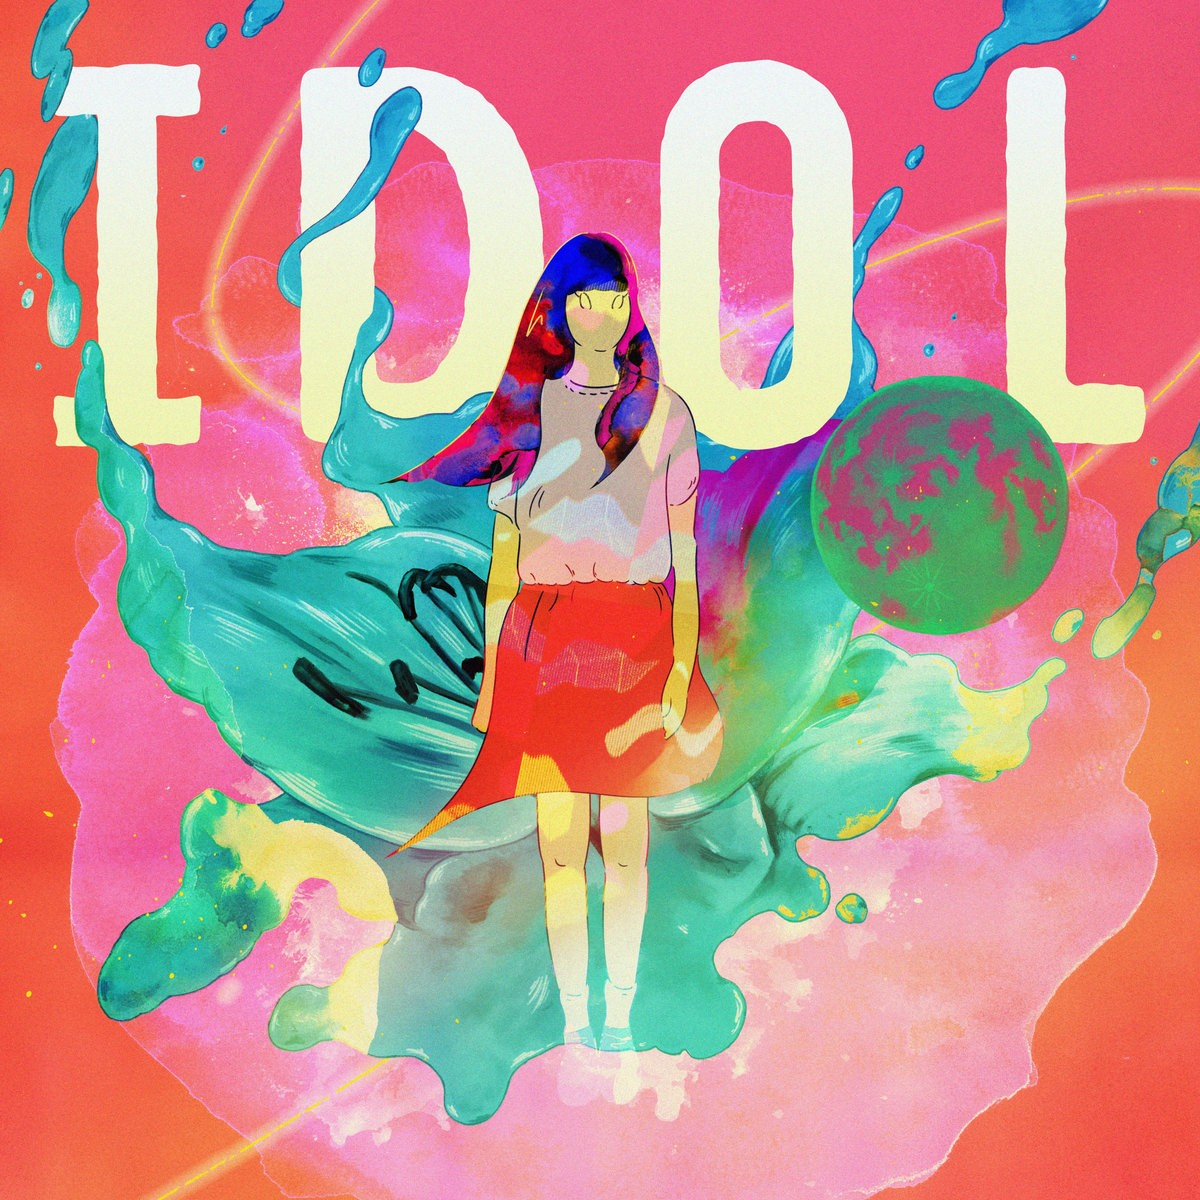 HoneyComeBear (ハニカムベアー) – IDOL [FLAC + MP3 320 / WEB] [2019.02.28]